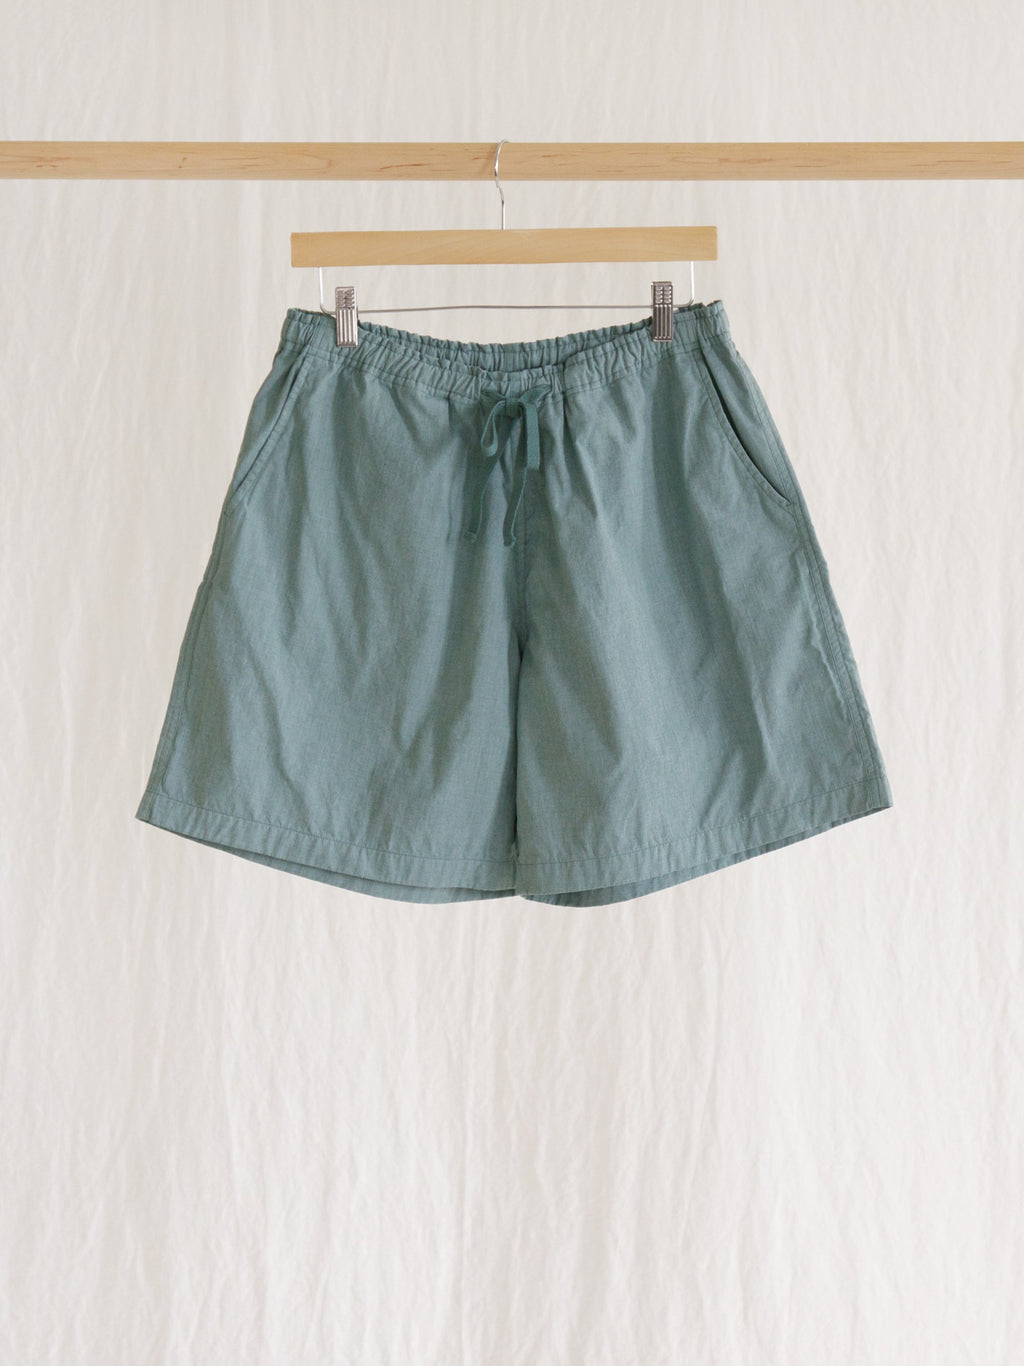 Namu Shop - Maillot Double Cloth Beach Shorts - Sage Green